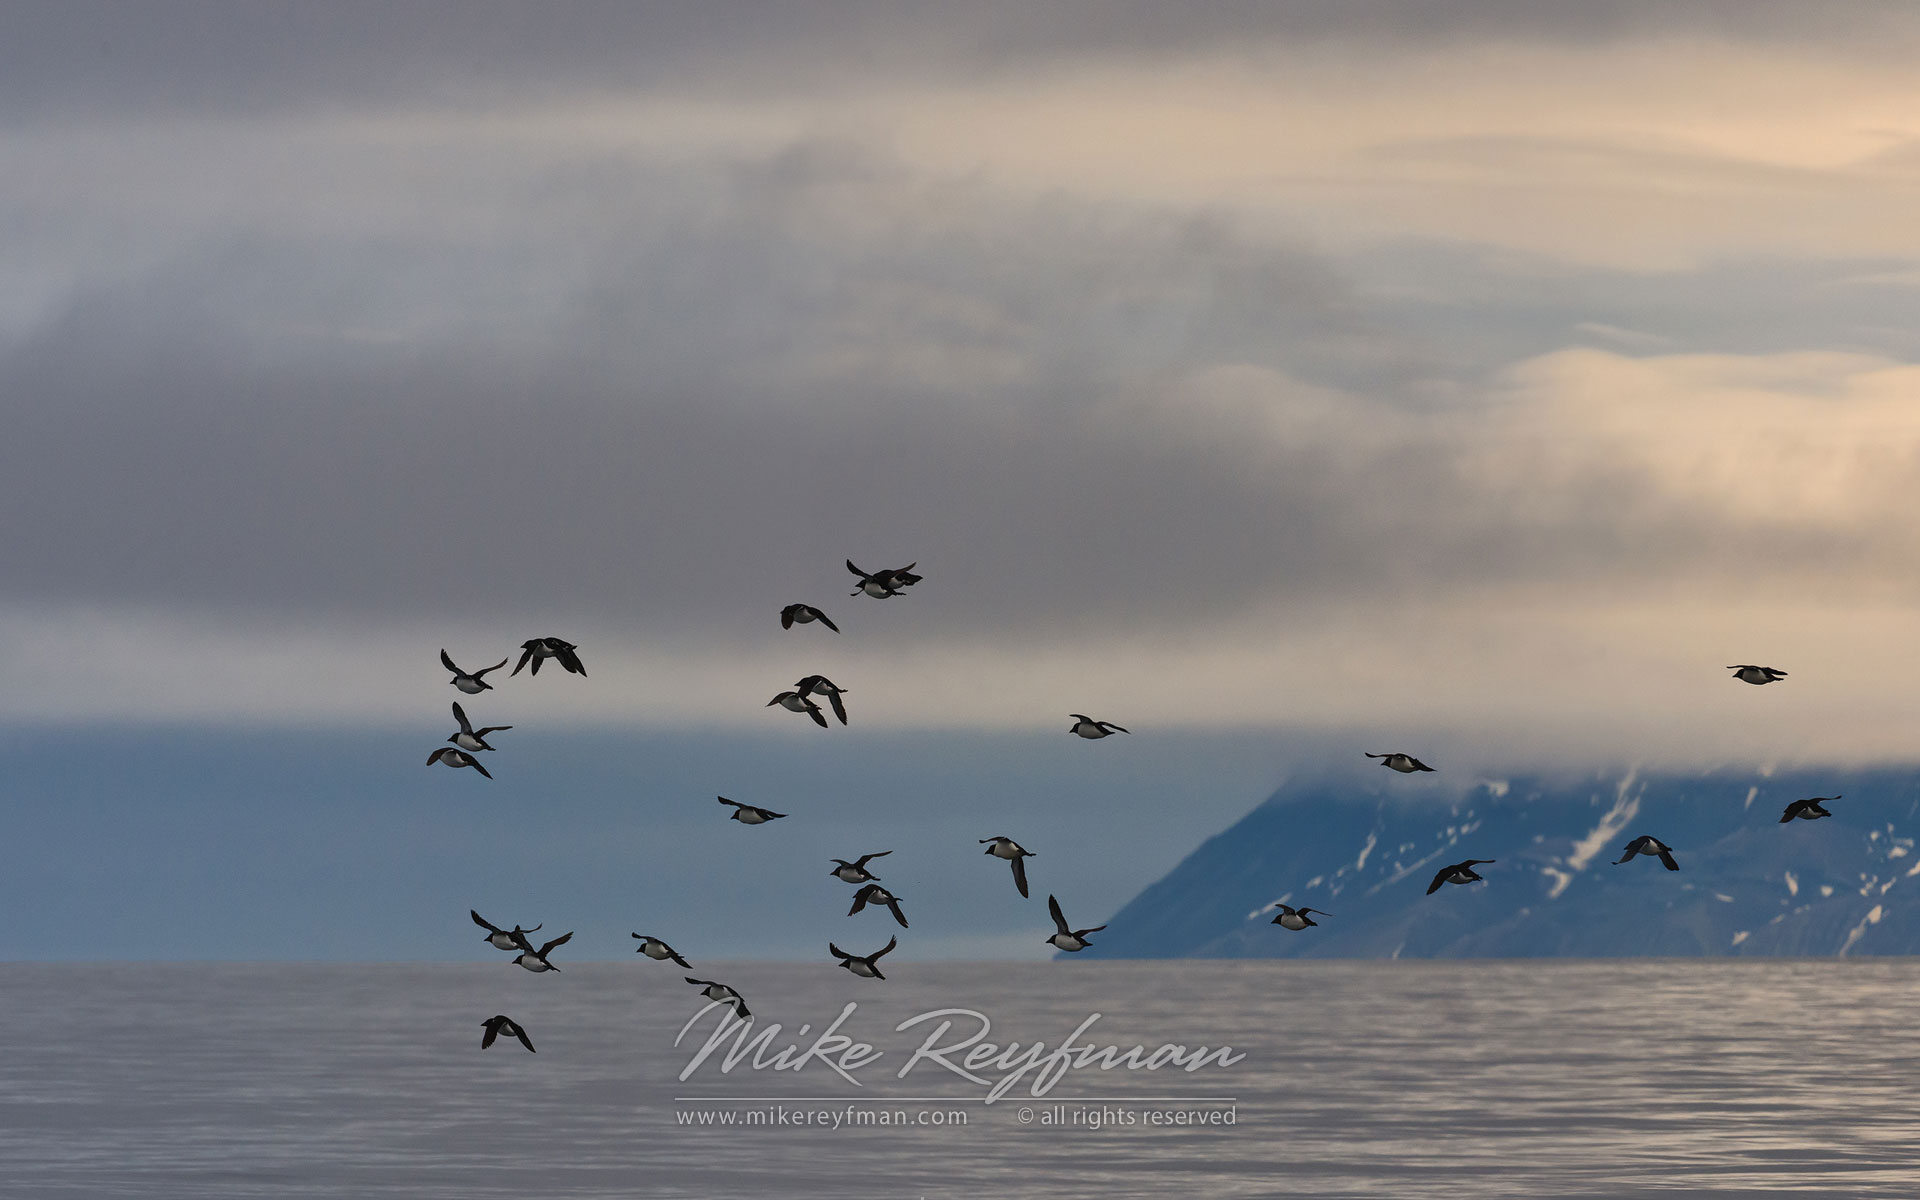 Thick-billed Murres or Brunnich's Guillemots (Uria lomvia). Spitsbergen, Svalbard, Norway. - Wildlife-Svalbard-Spitsbergen-Norway - Mike Reyfman Photography